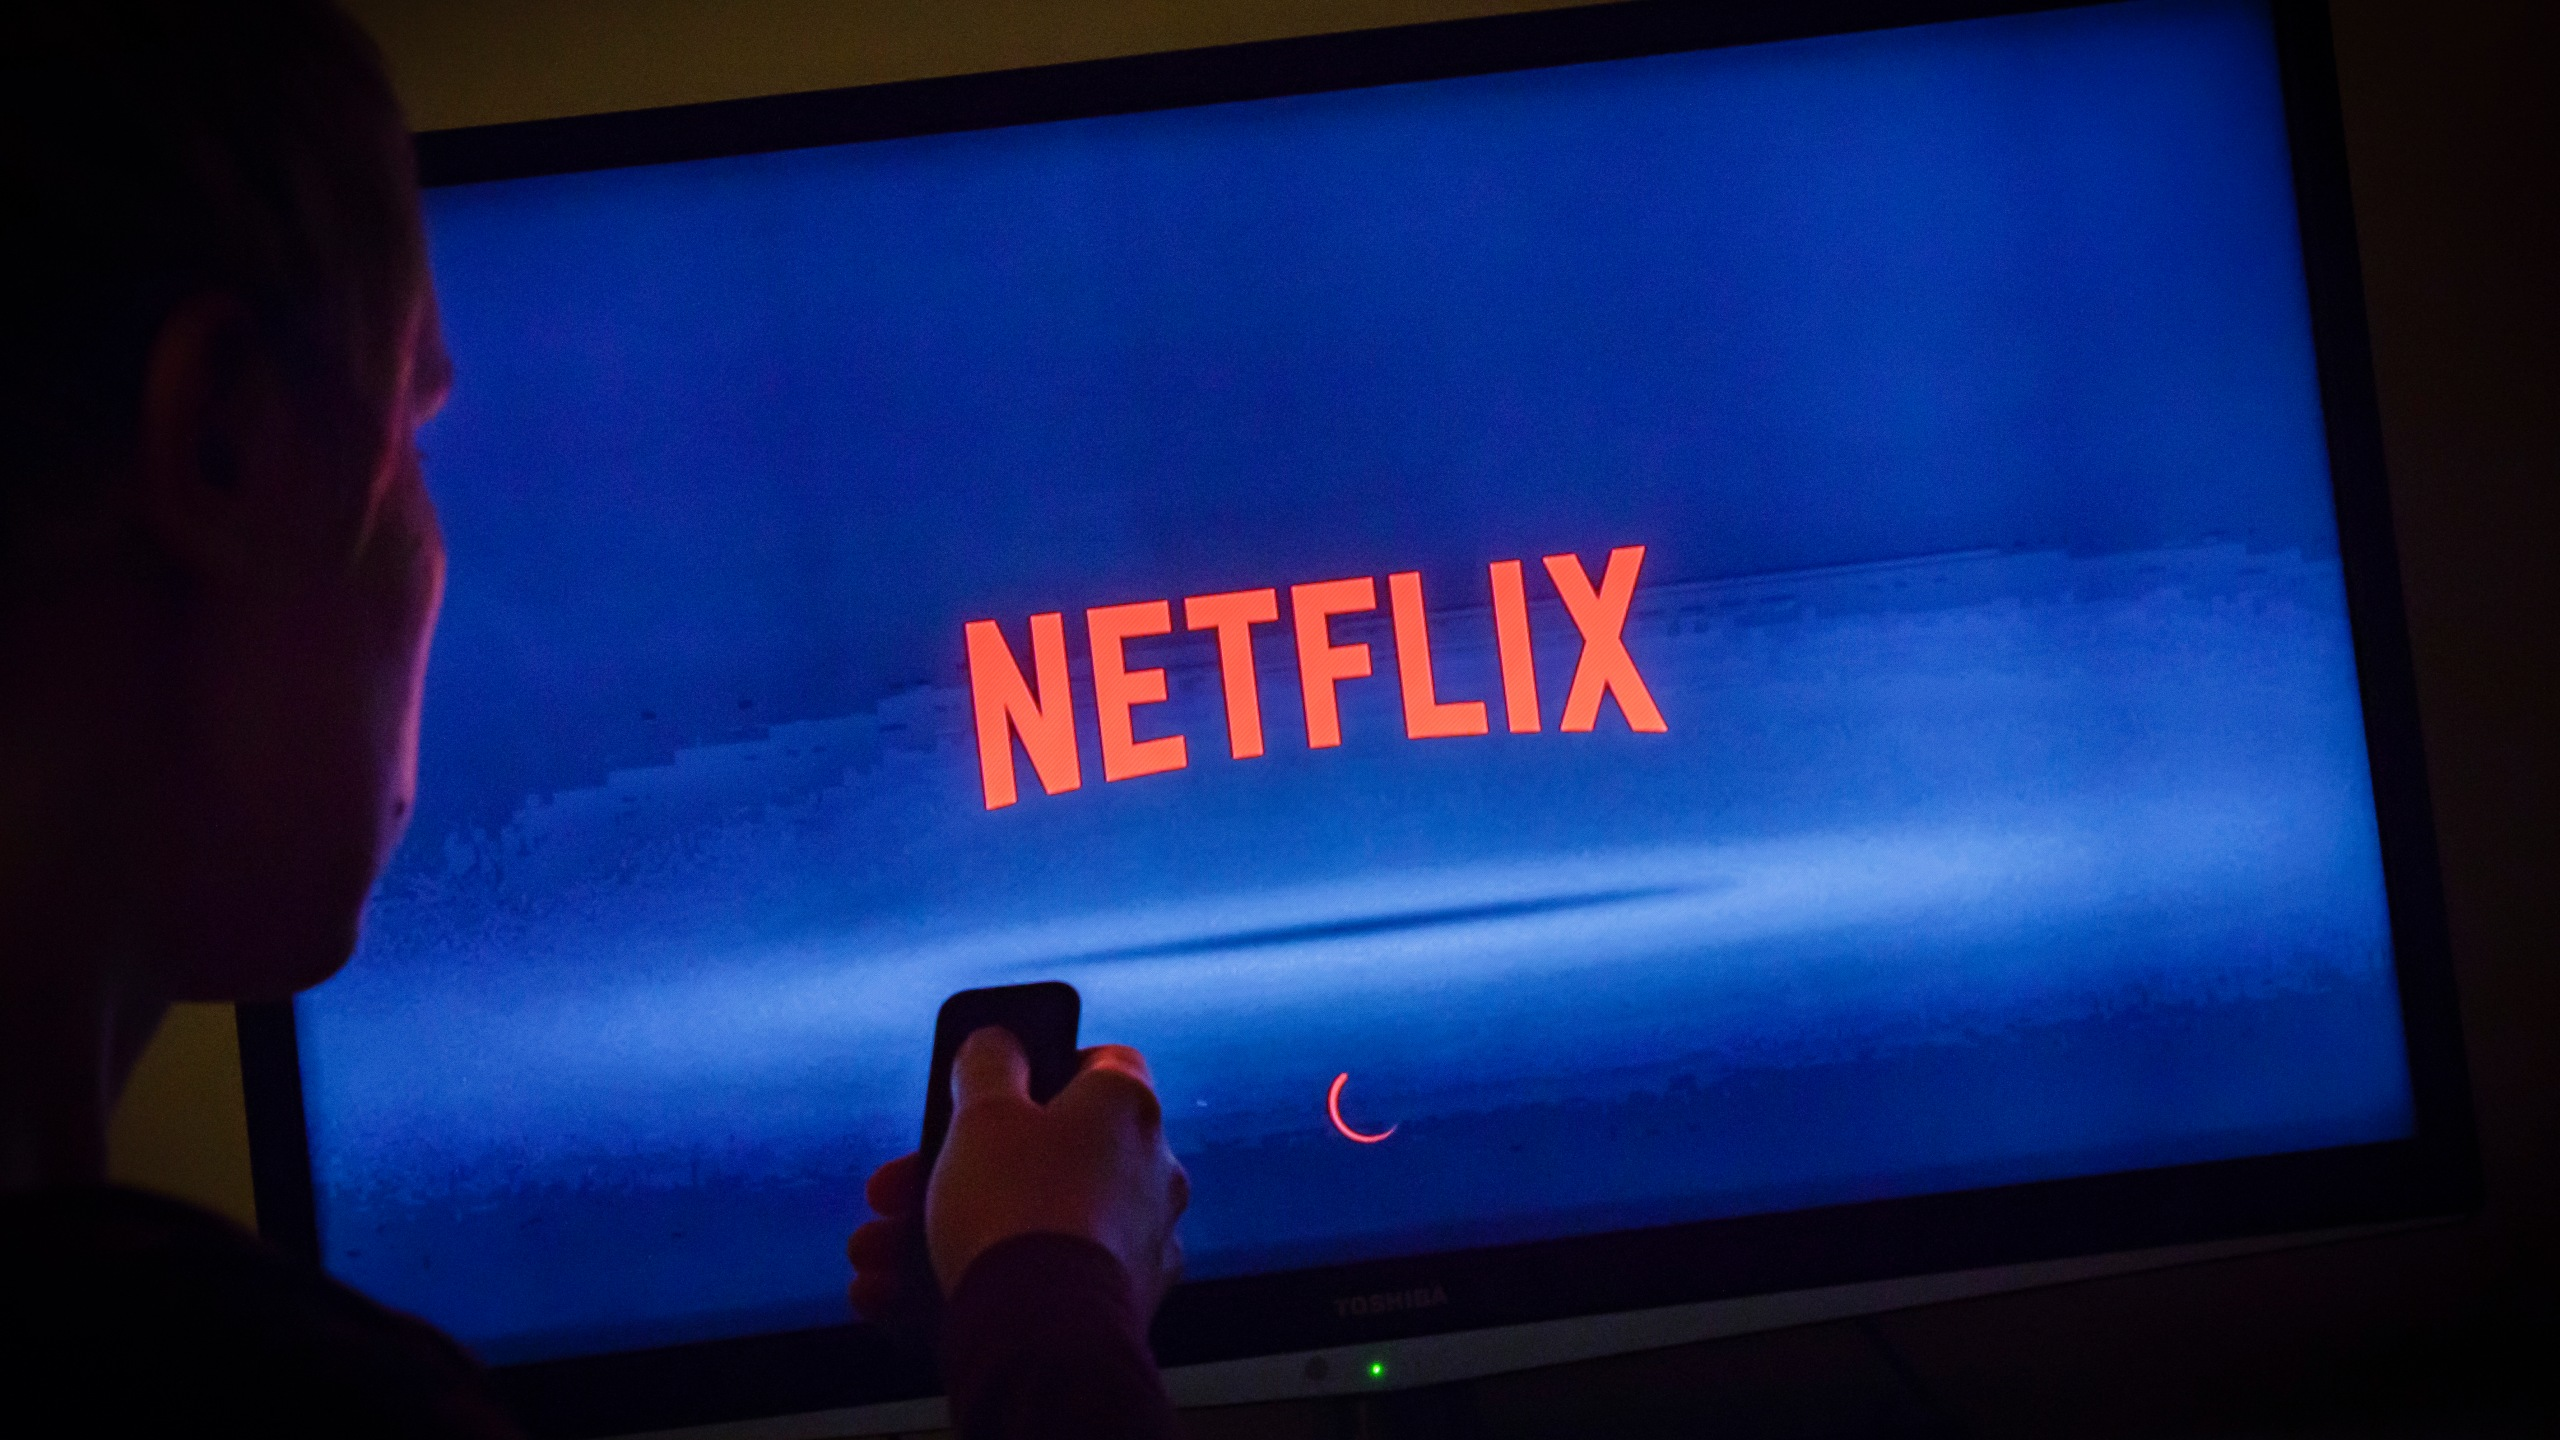 The Netflix logo can be seen on a TV on April 5, 2018. (Thomas Trutschel/Photothek via Getty Images)